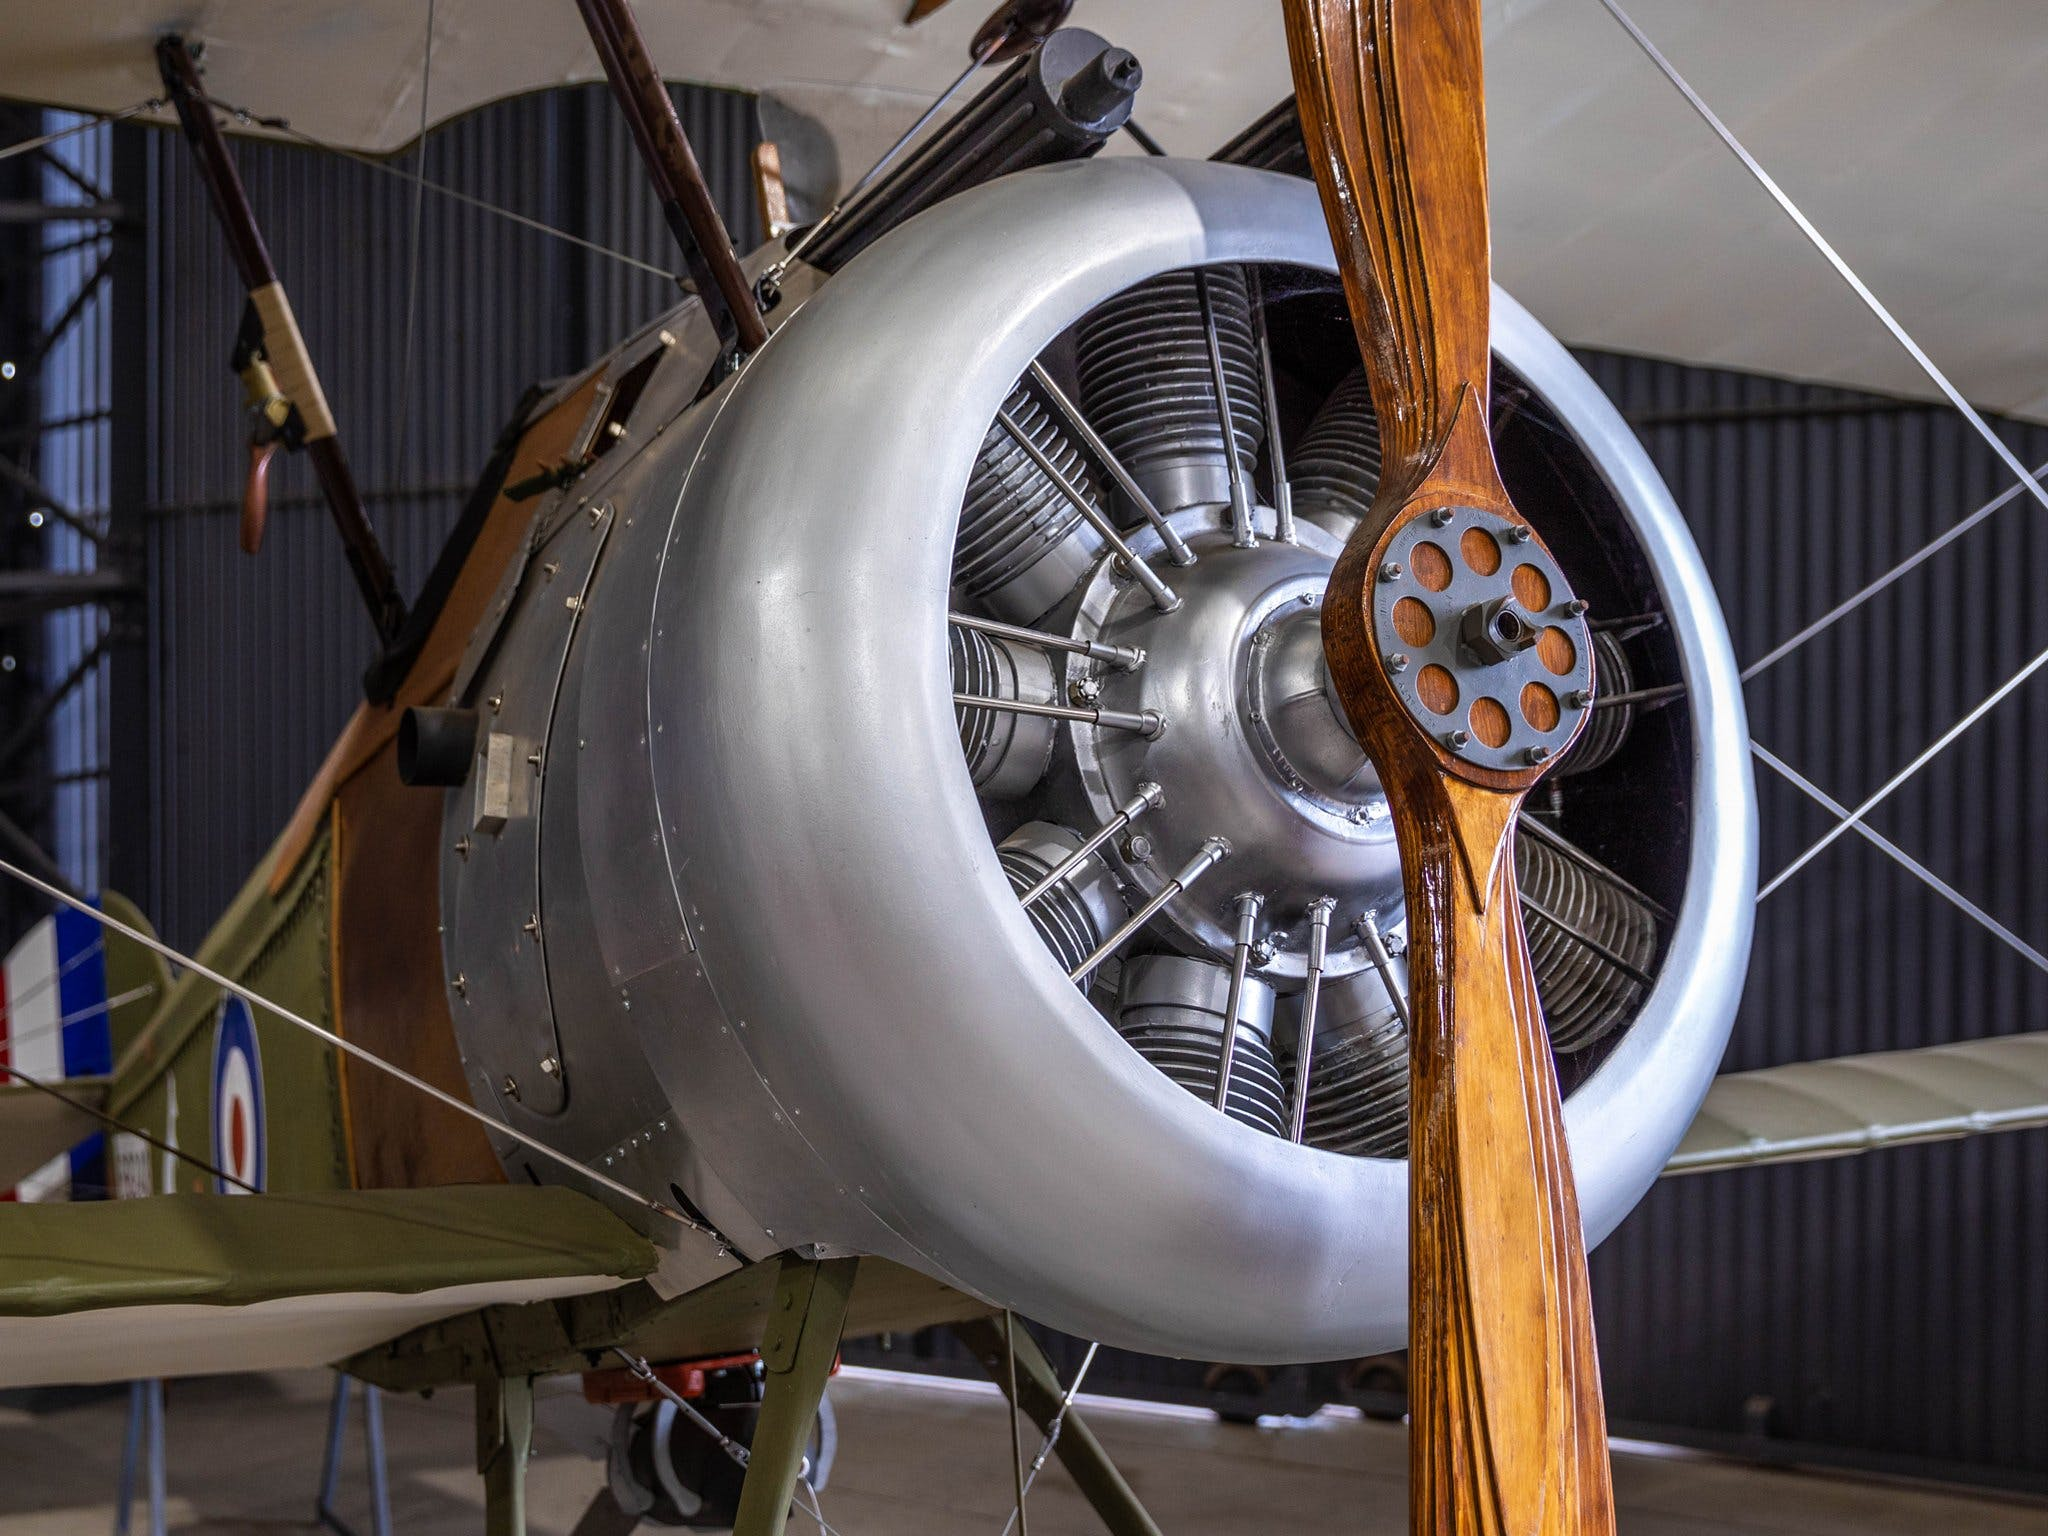 RAAF Amberley Aviation Heritage Centre - Accommodation Daintree